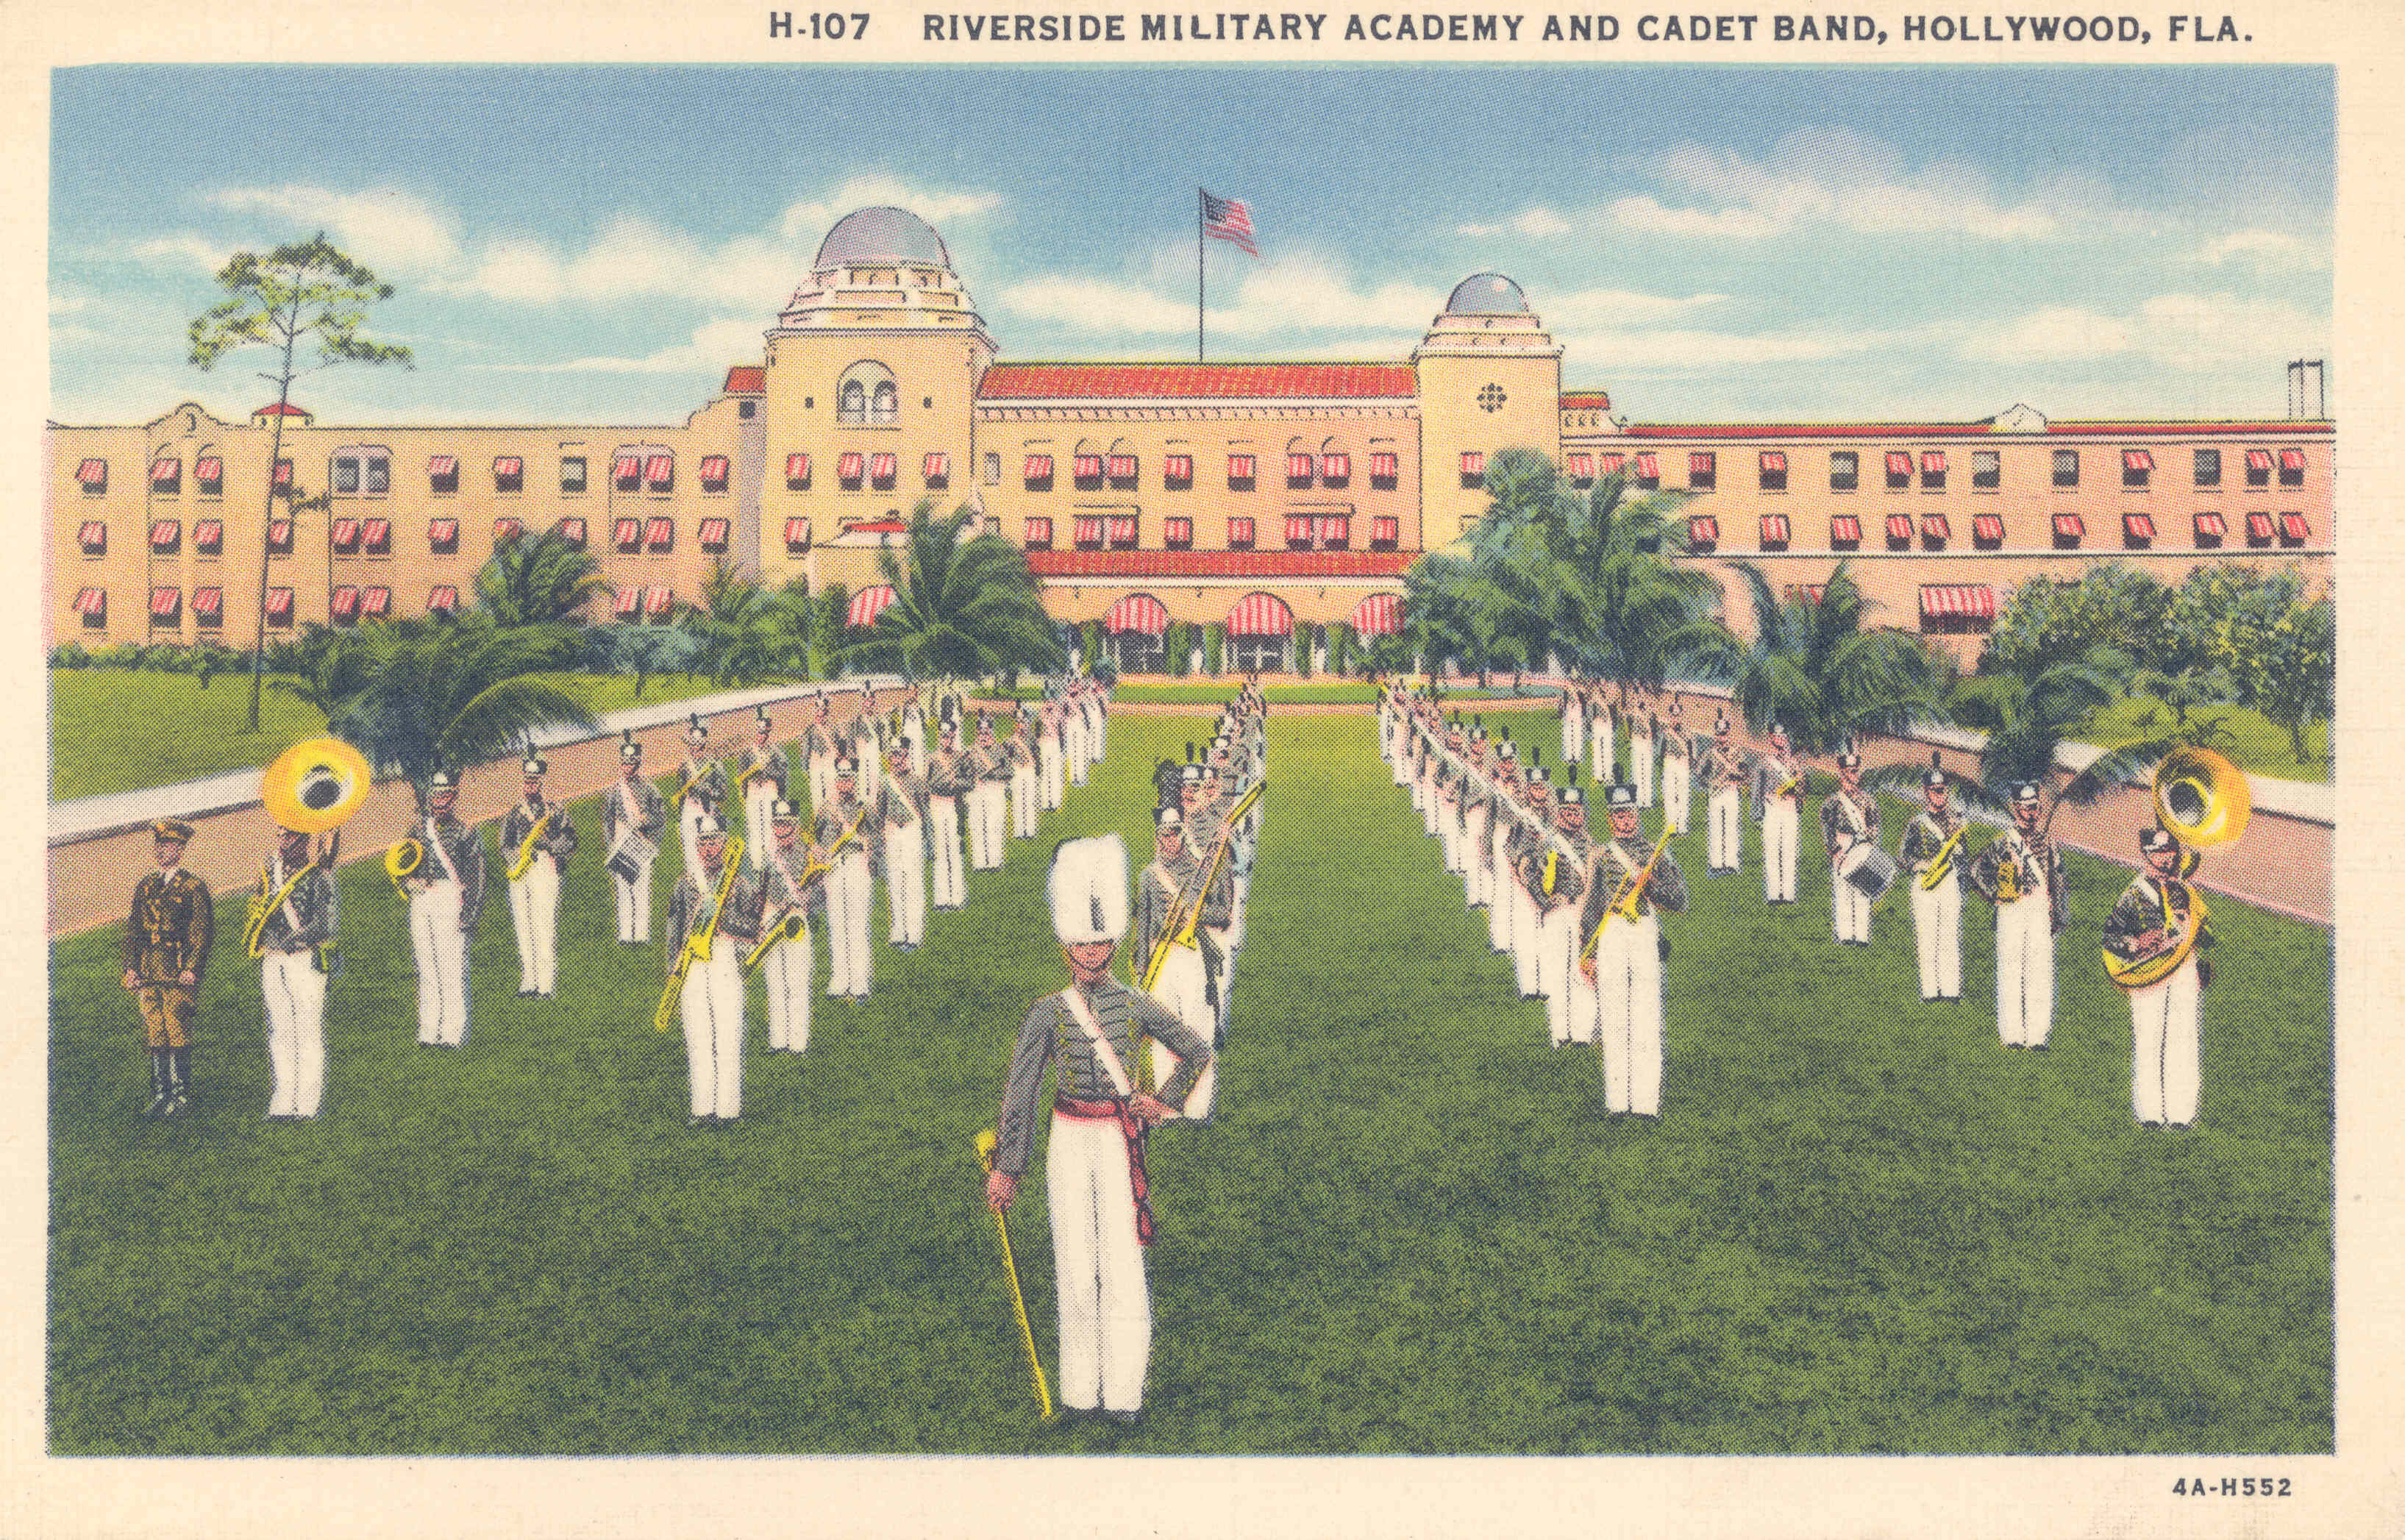 Riverside Military Academy and Cadet Band